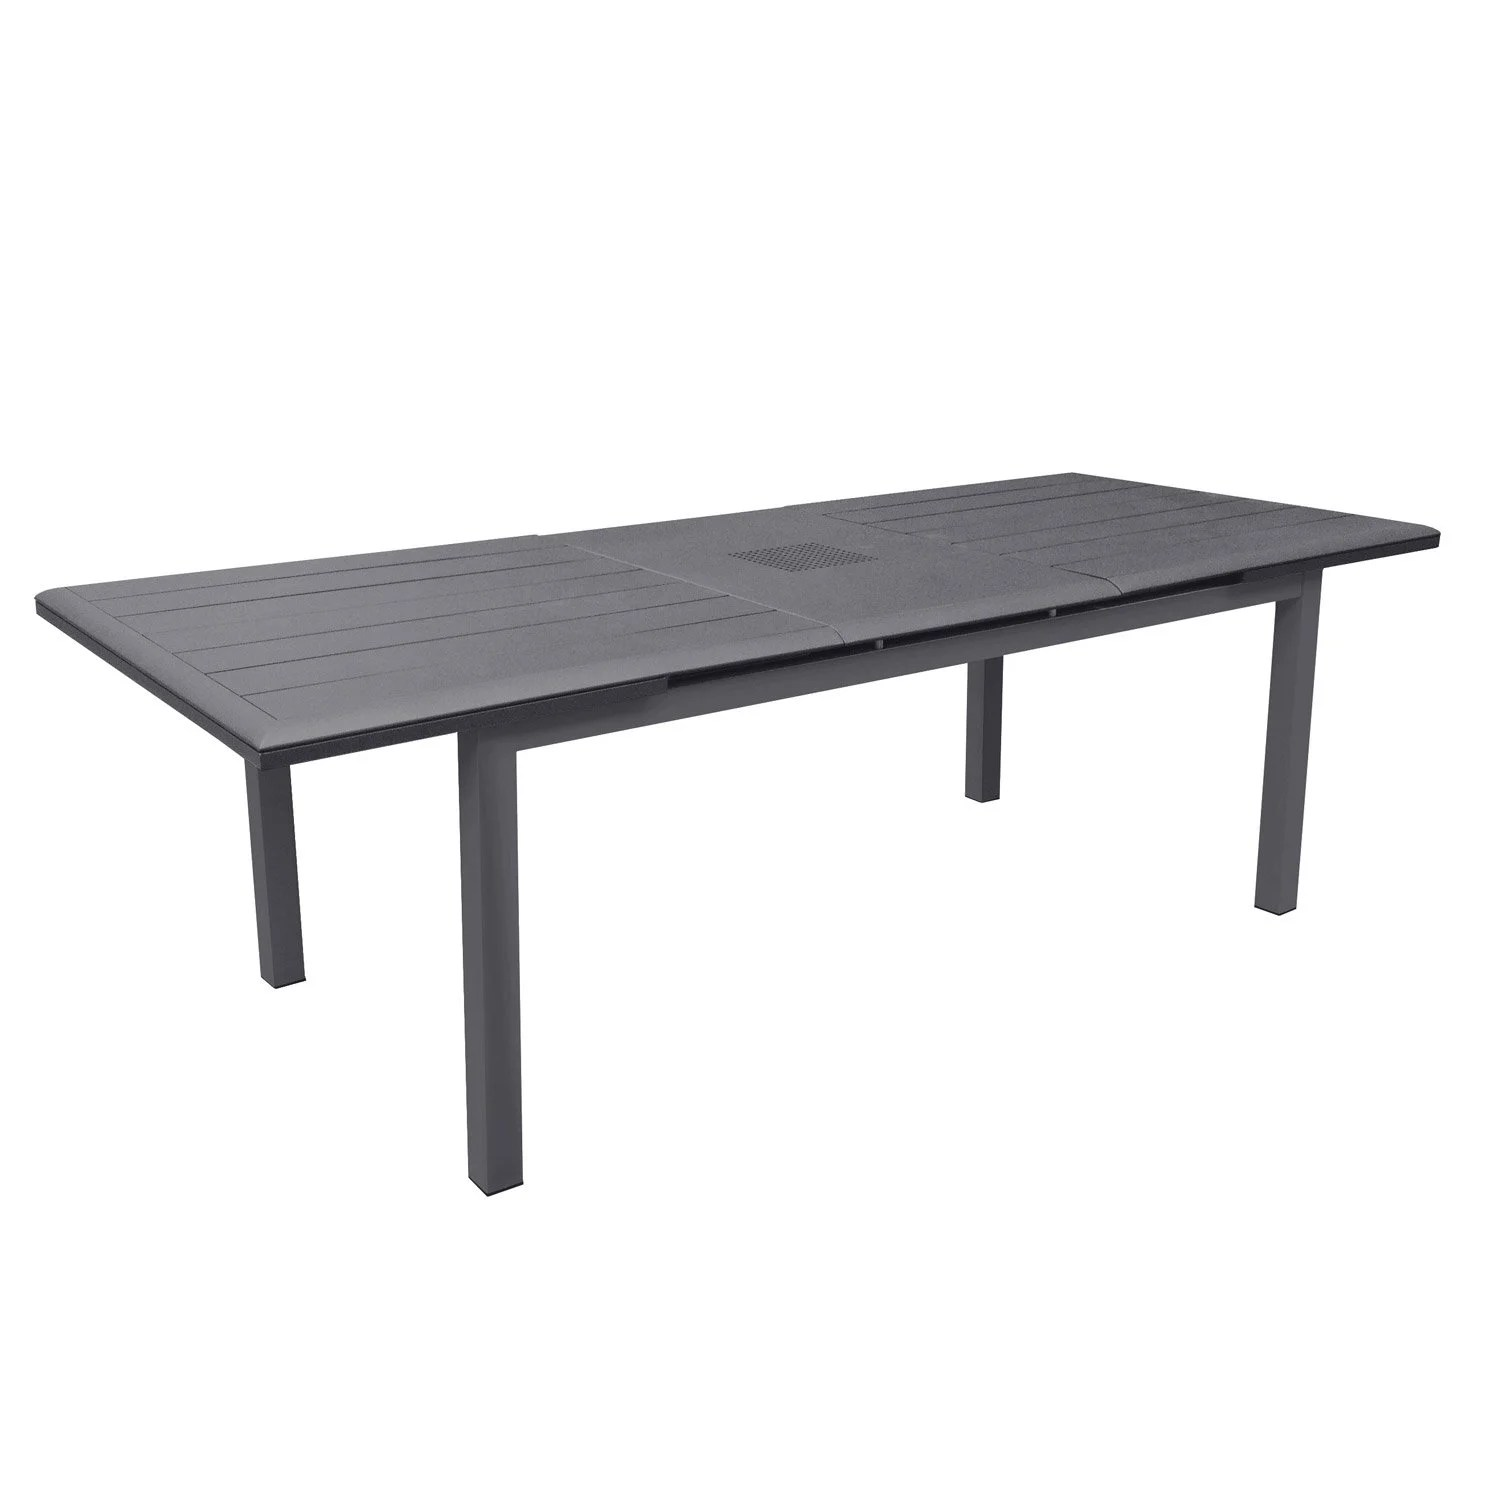 Table Fer Jardin Table De Jardin Louisiane Rectangulaire Gris 6 8 Personnes